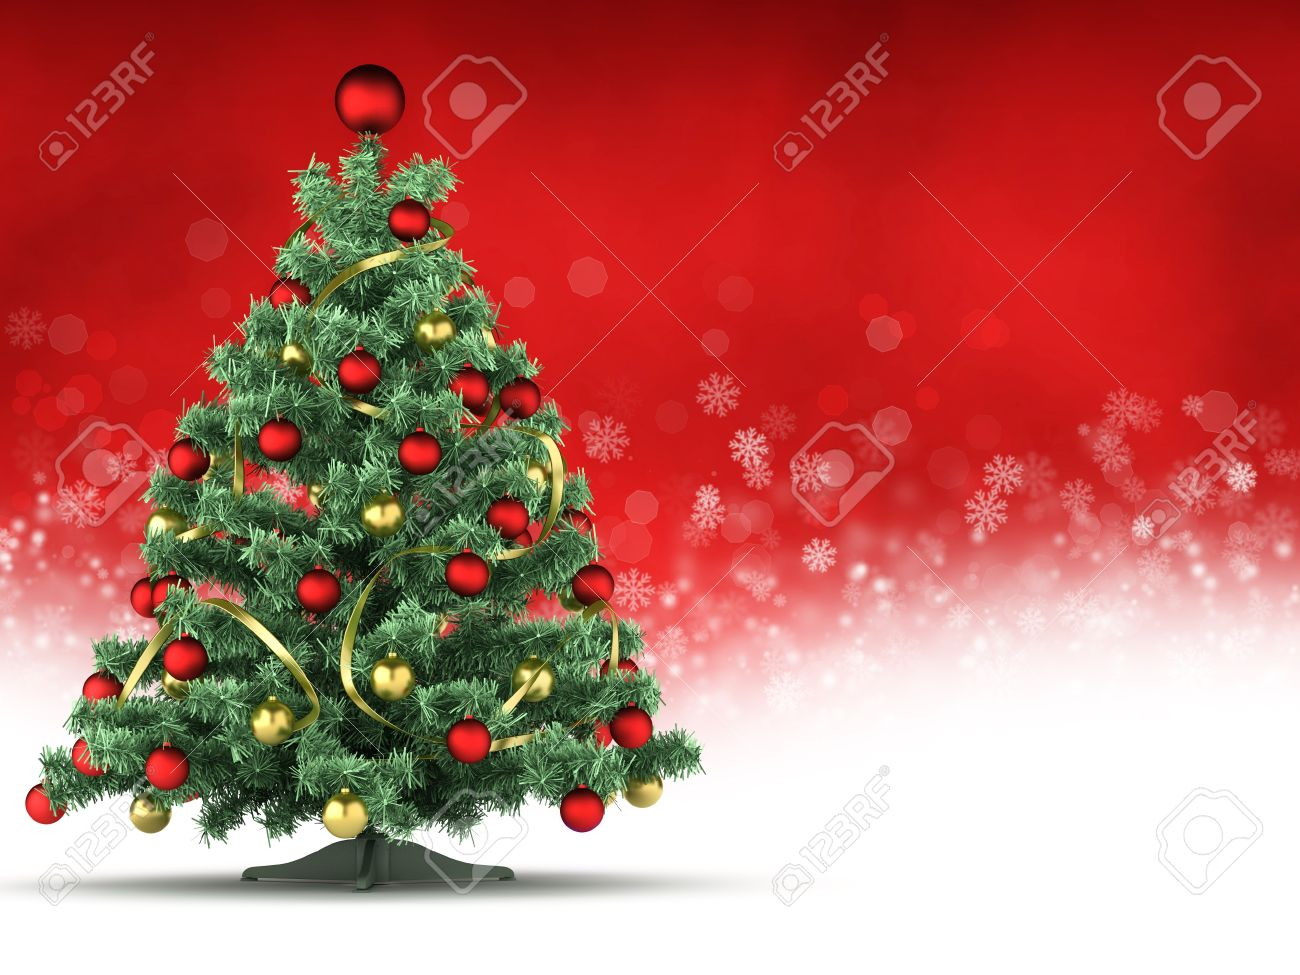 Christmas Card Template.Christmas Card Template Xmas Tree On Red And White Background